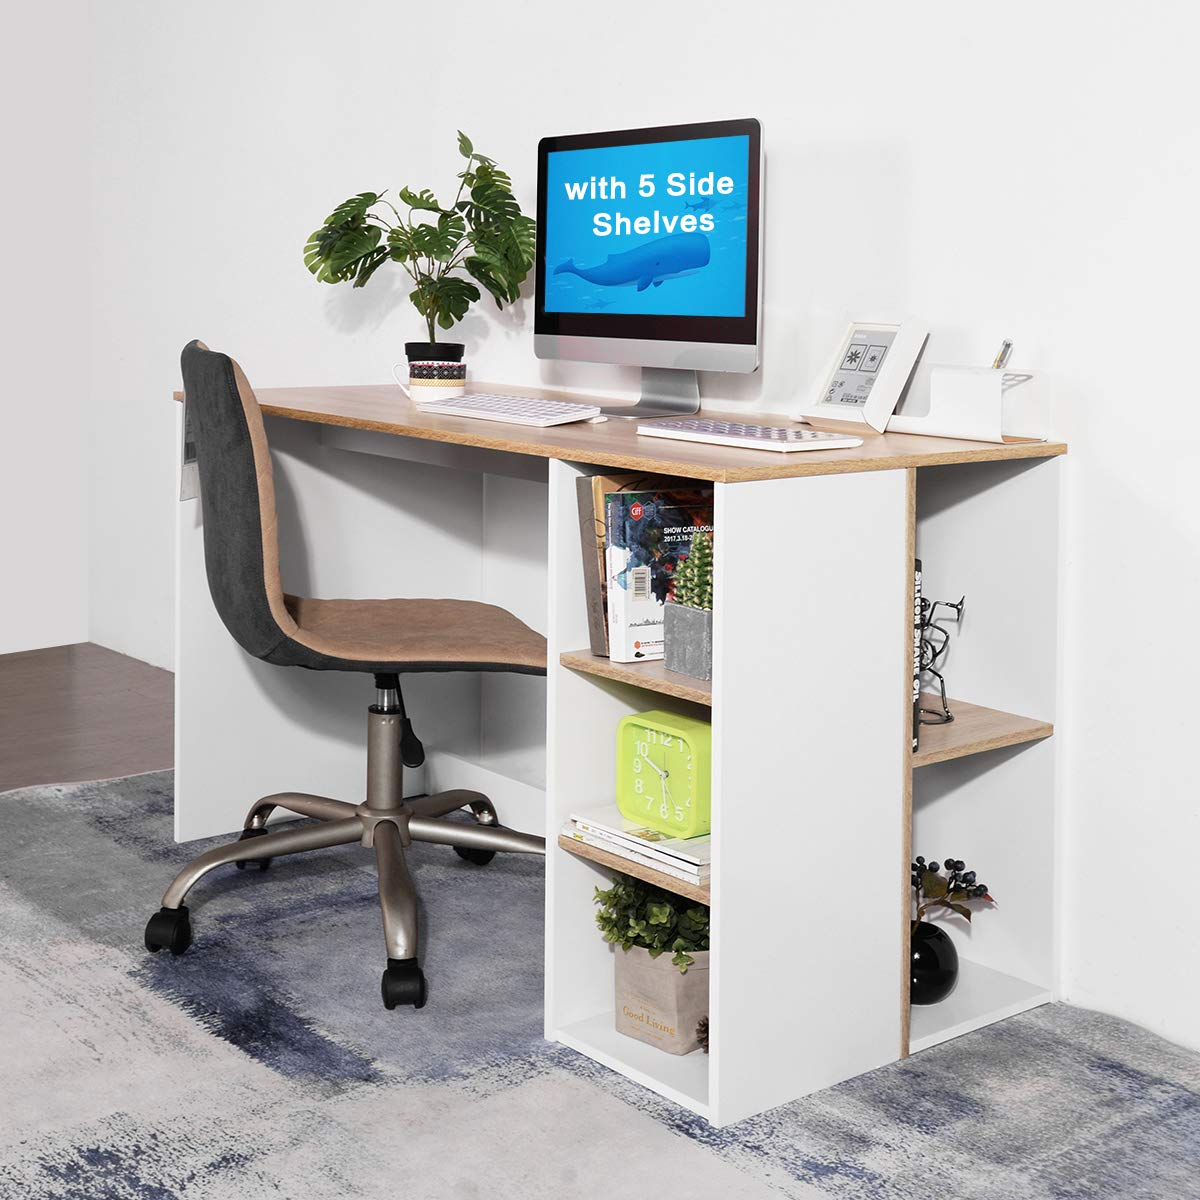 Coavas Office-Computer Desk with Storage, Study-Work Desk with 5 Shelves, Students-Writing Desk Home Laptop Study Table Modern Wood Hutch Large Workstation with Bookcase BREN11 /Beech and White by Coavas (Image #6)